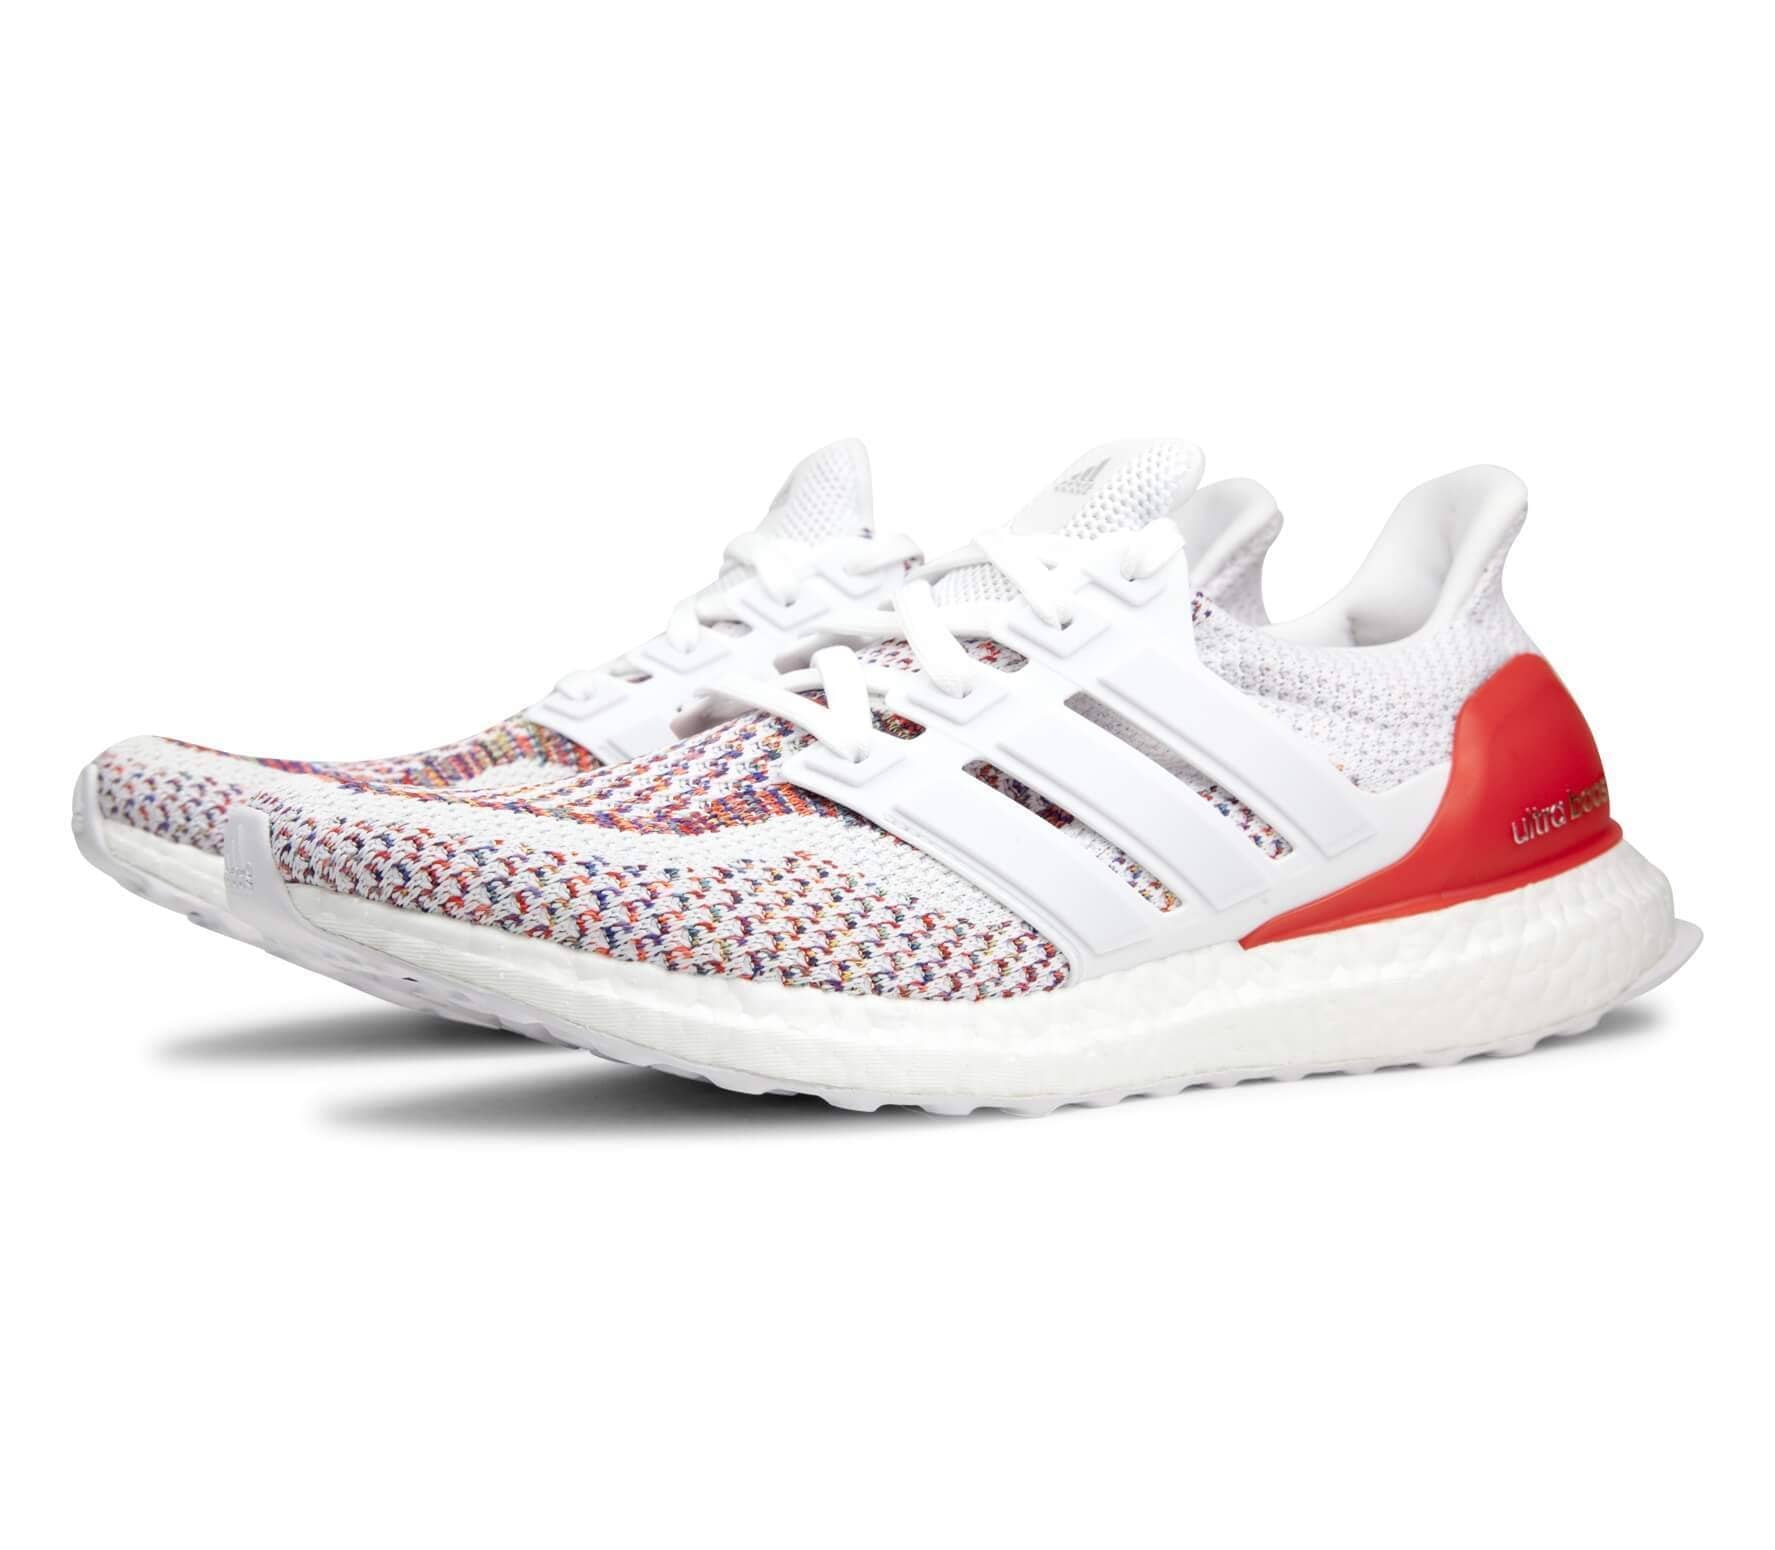 Adidas - Ultra Boost chaussures de running pour hommes (blanc/rouge)